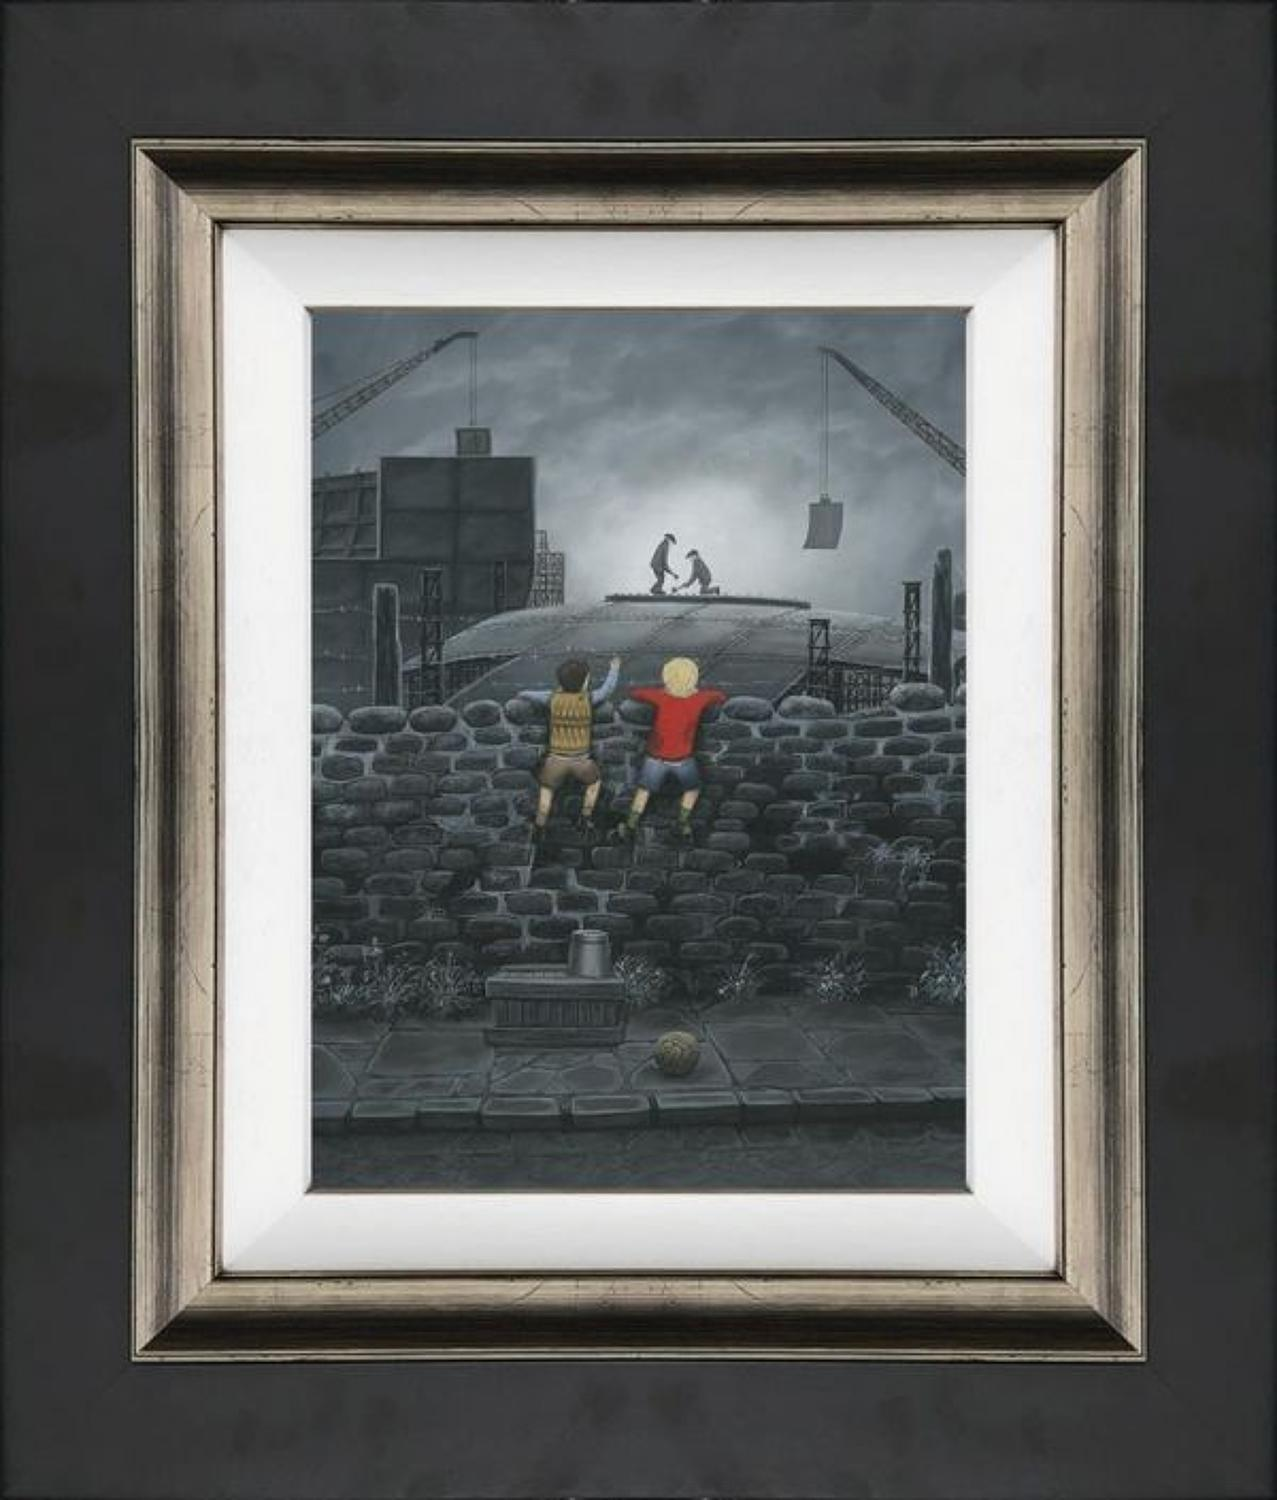 Give us A Wave Dad Framed Canvas Art Print by Leigh Lambert